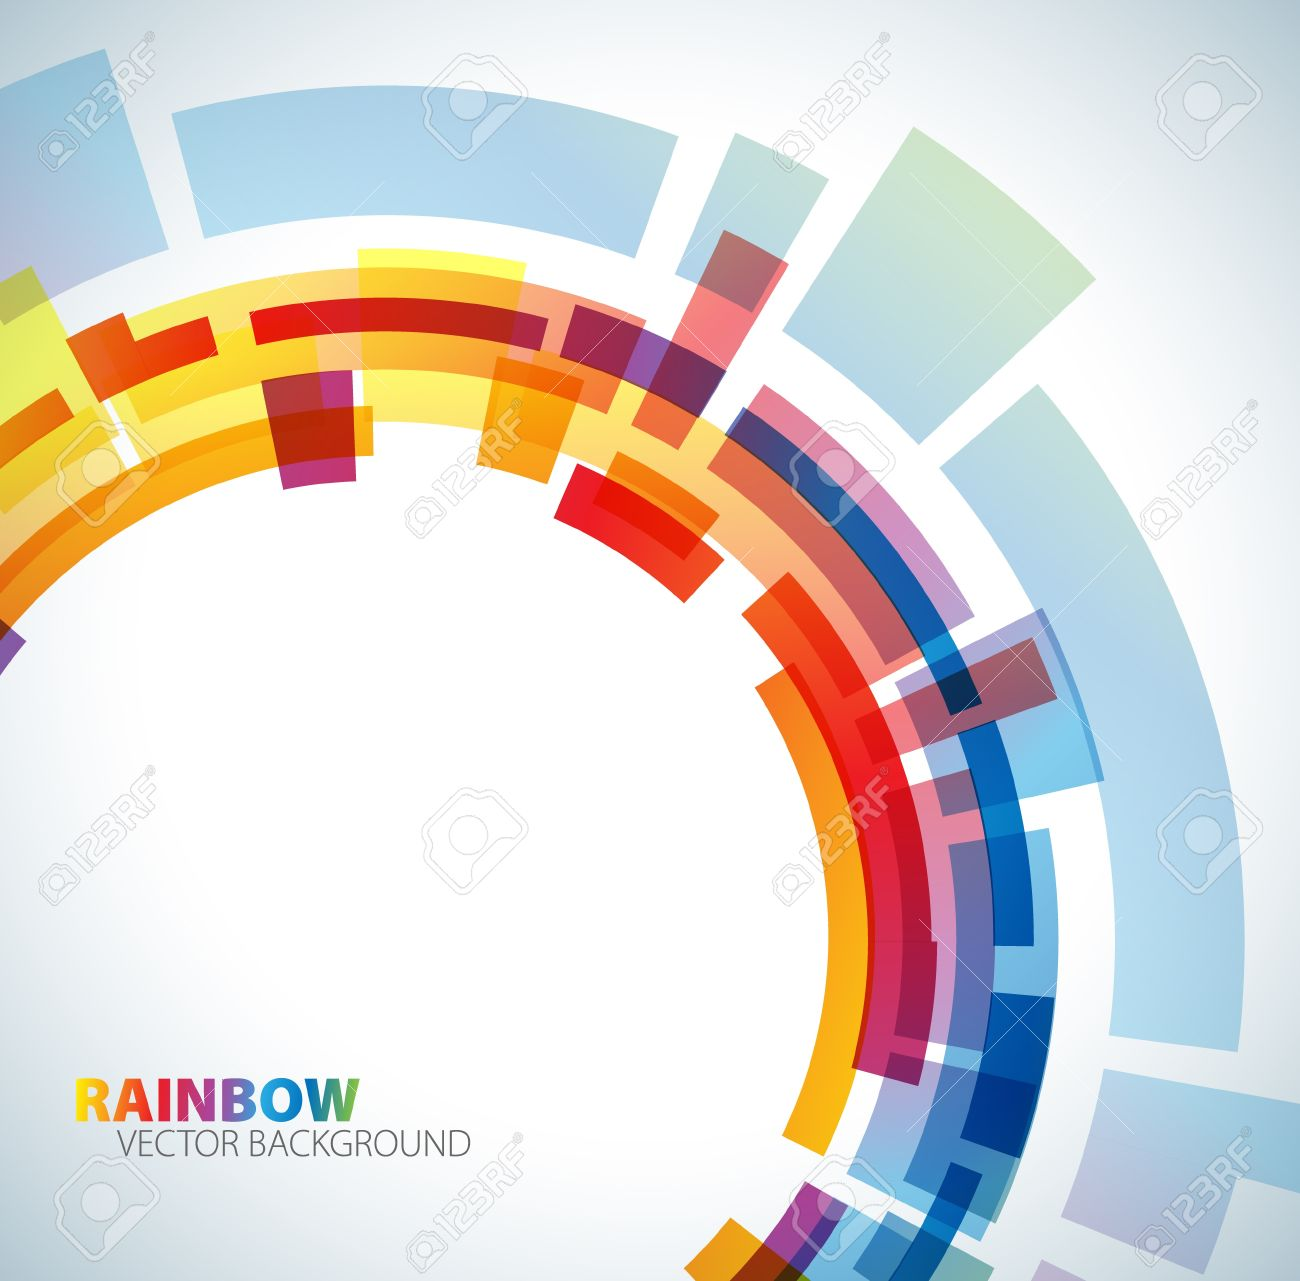 Abstract background with rainbow colors - 8415361